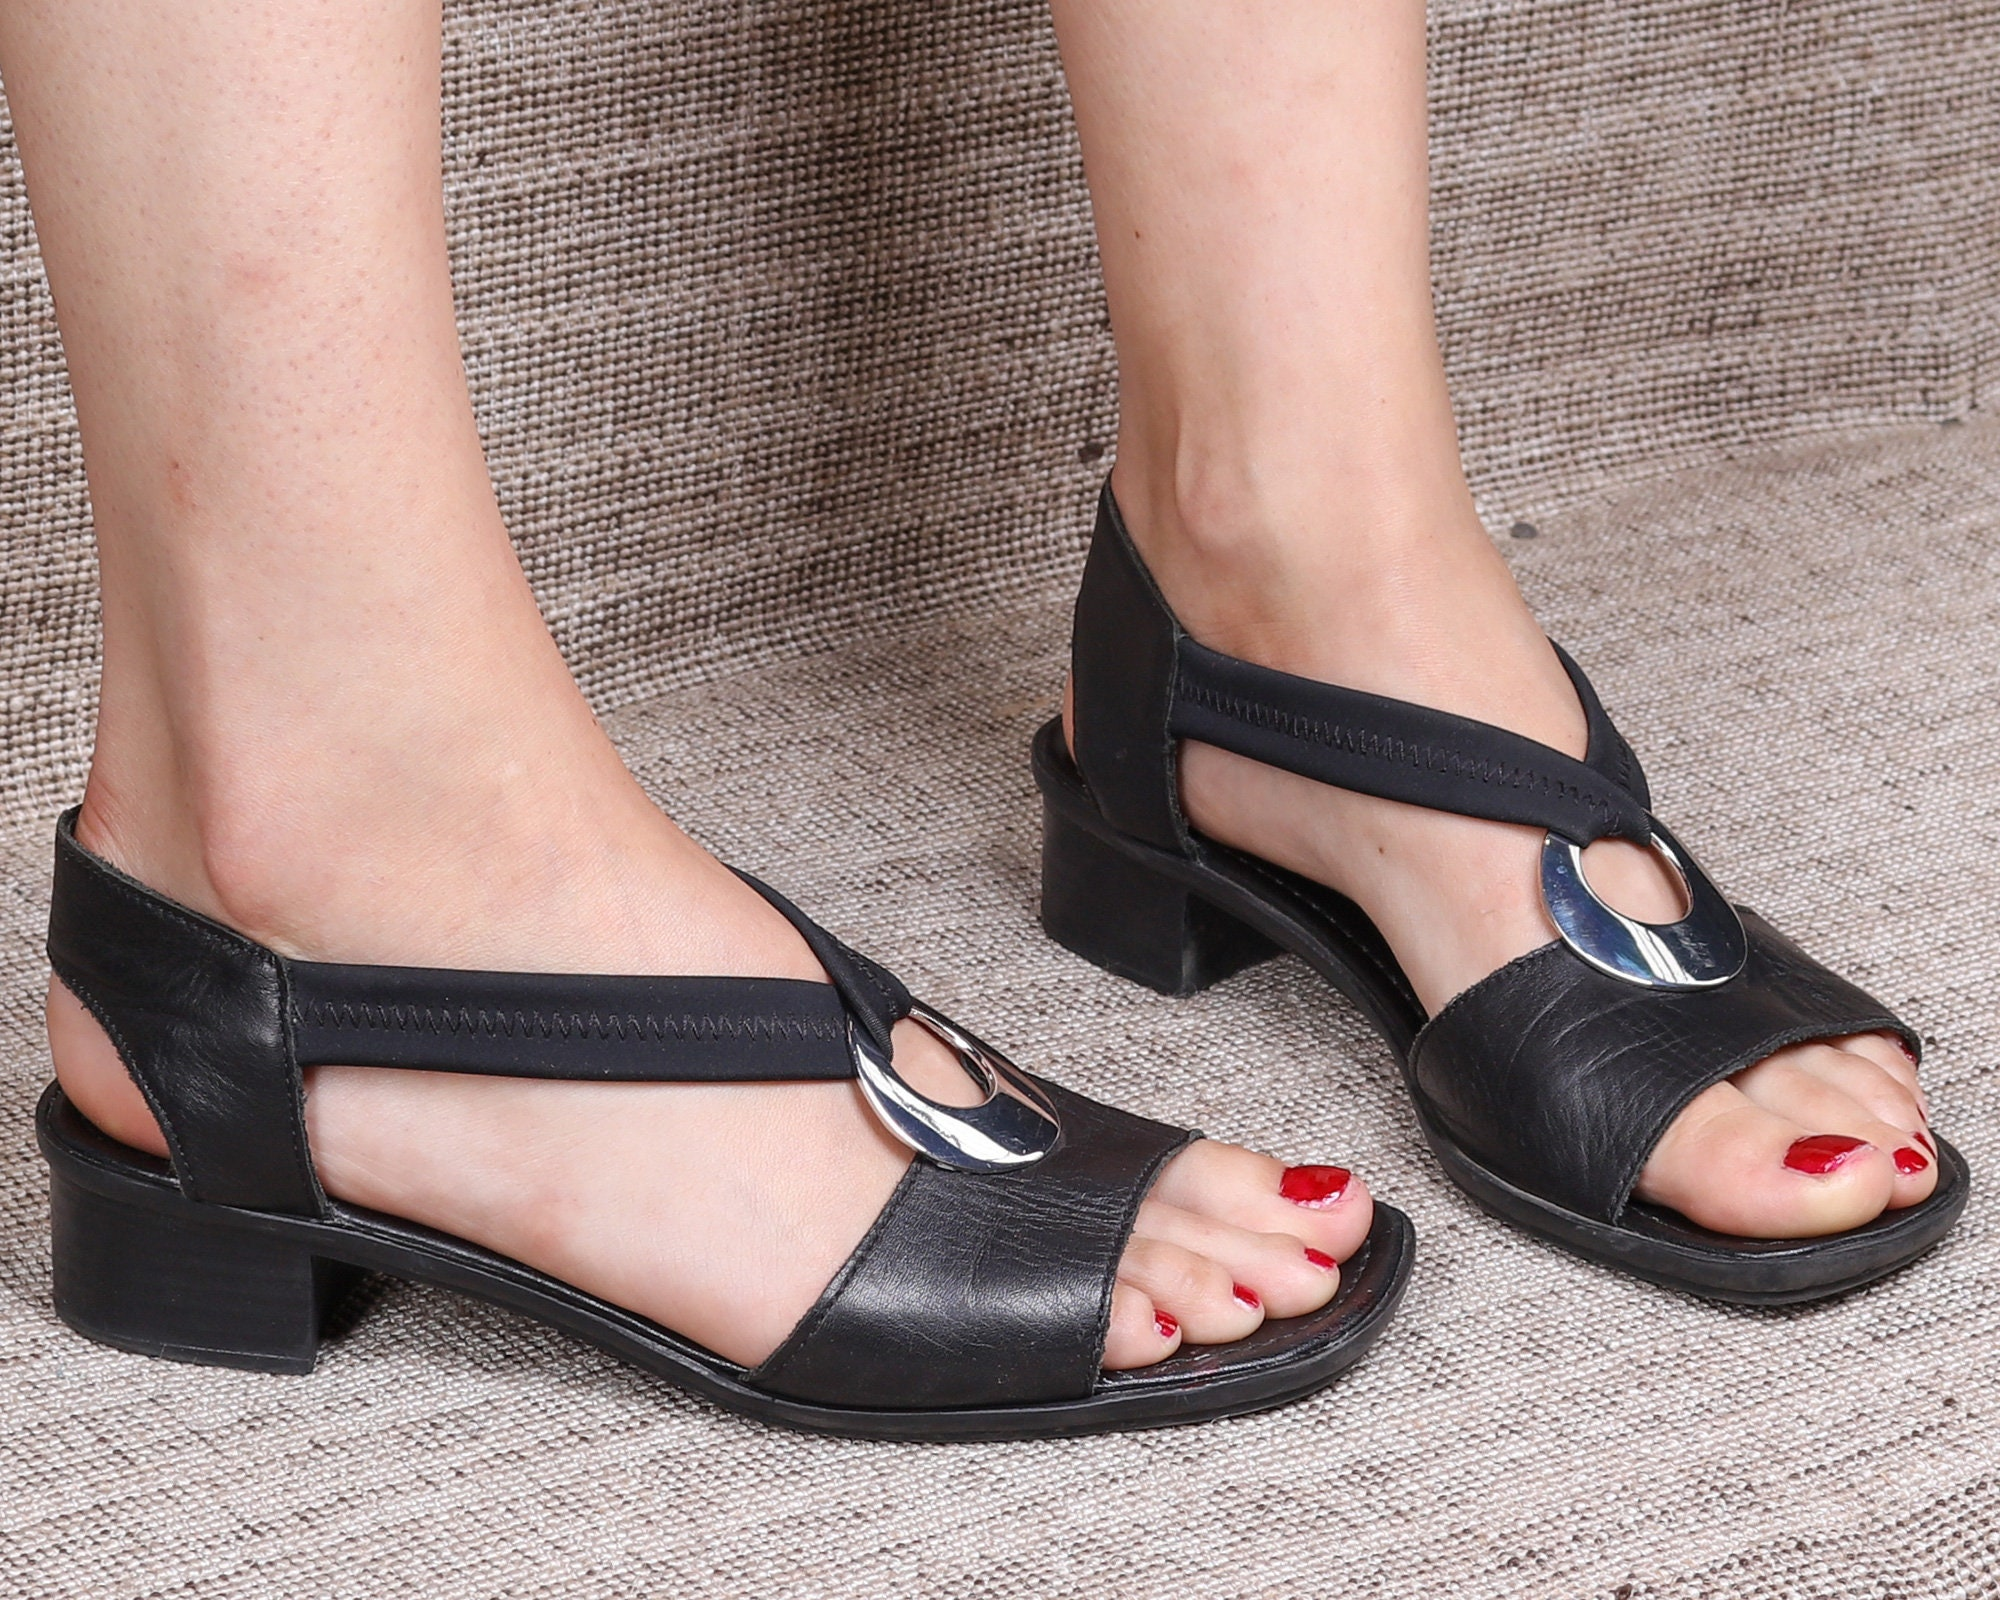 Us 8.5 Ankle Strap Sandals 90s Block Heel Vintage Chunky Block Stable Heel Black Real Leather Italian made Square Open Toe UK 6 EUR 39